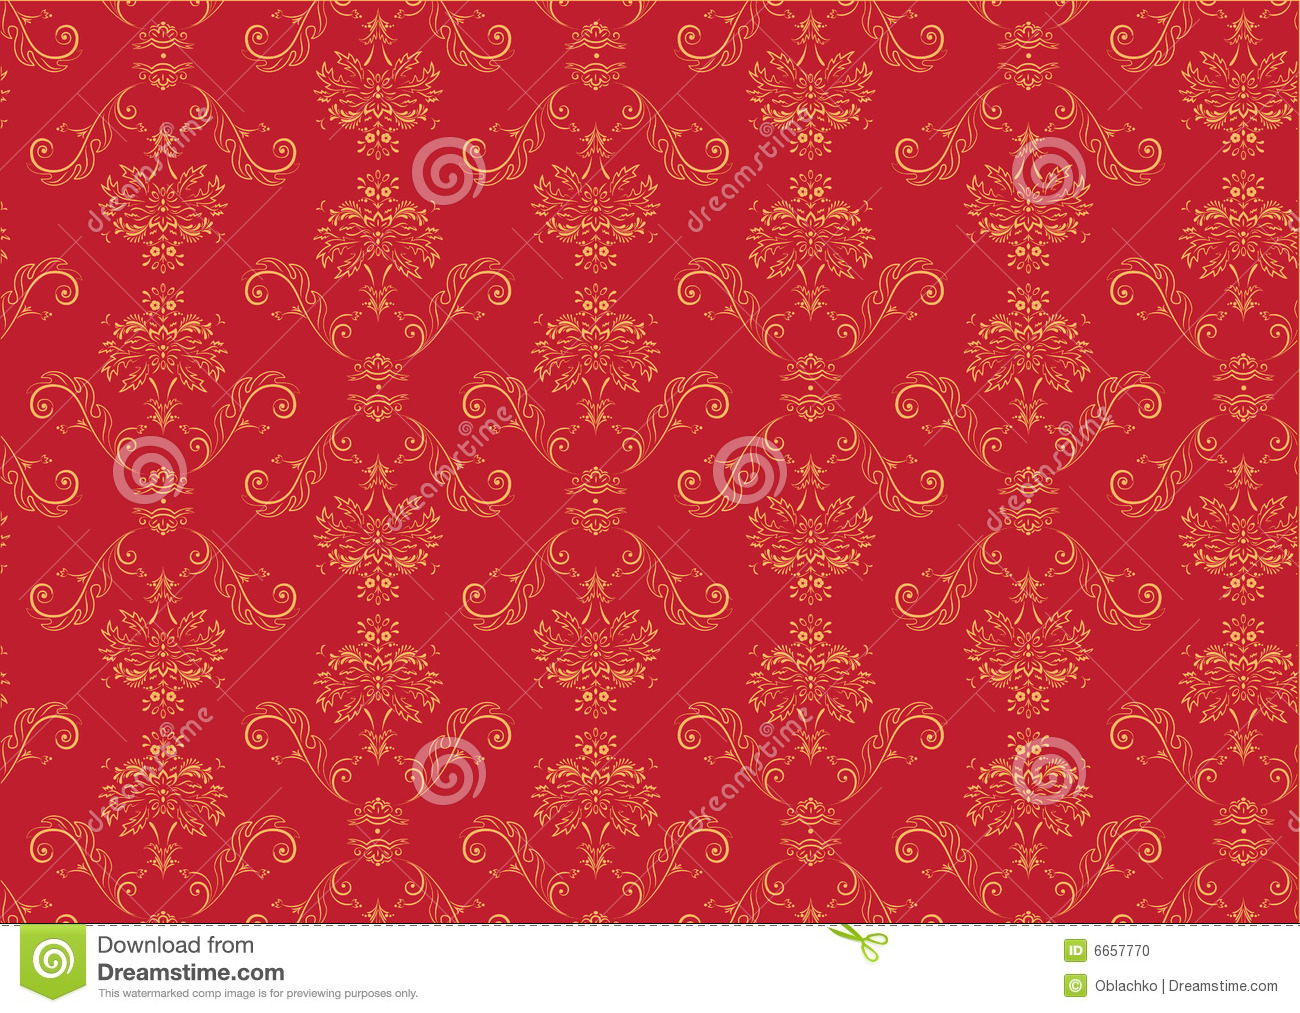 Victorian wallpaper pattern red - photo#17